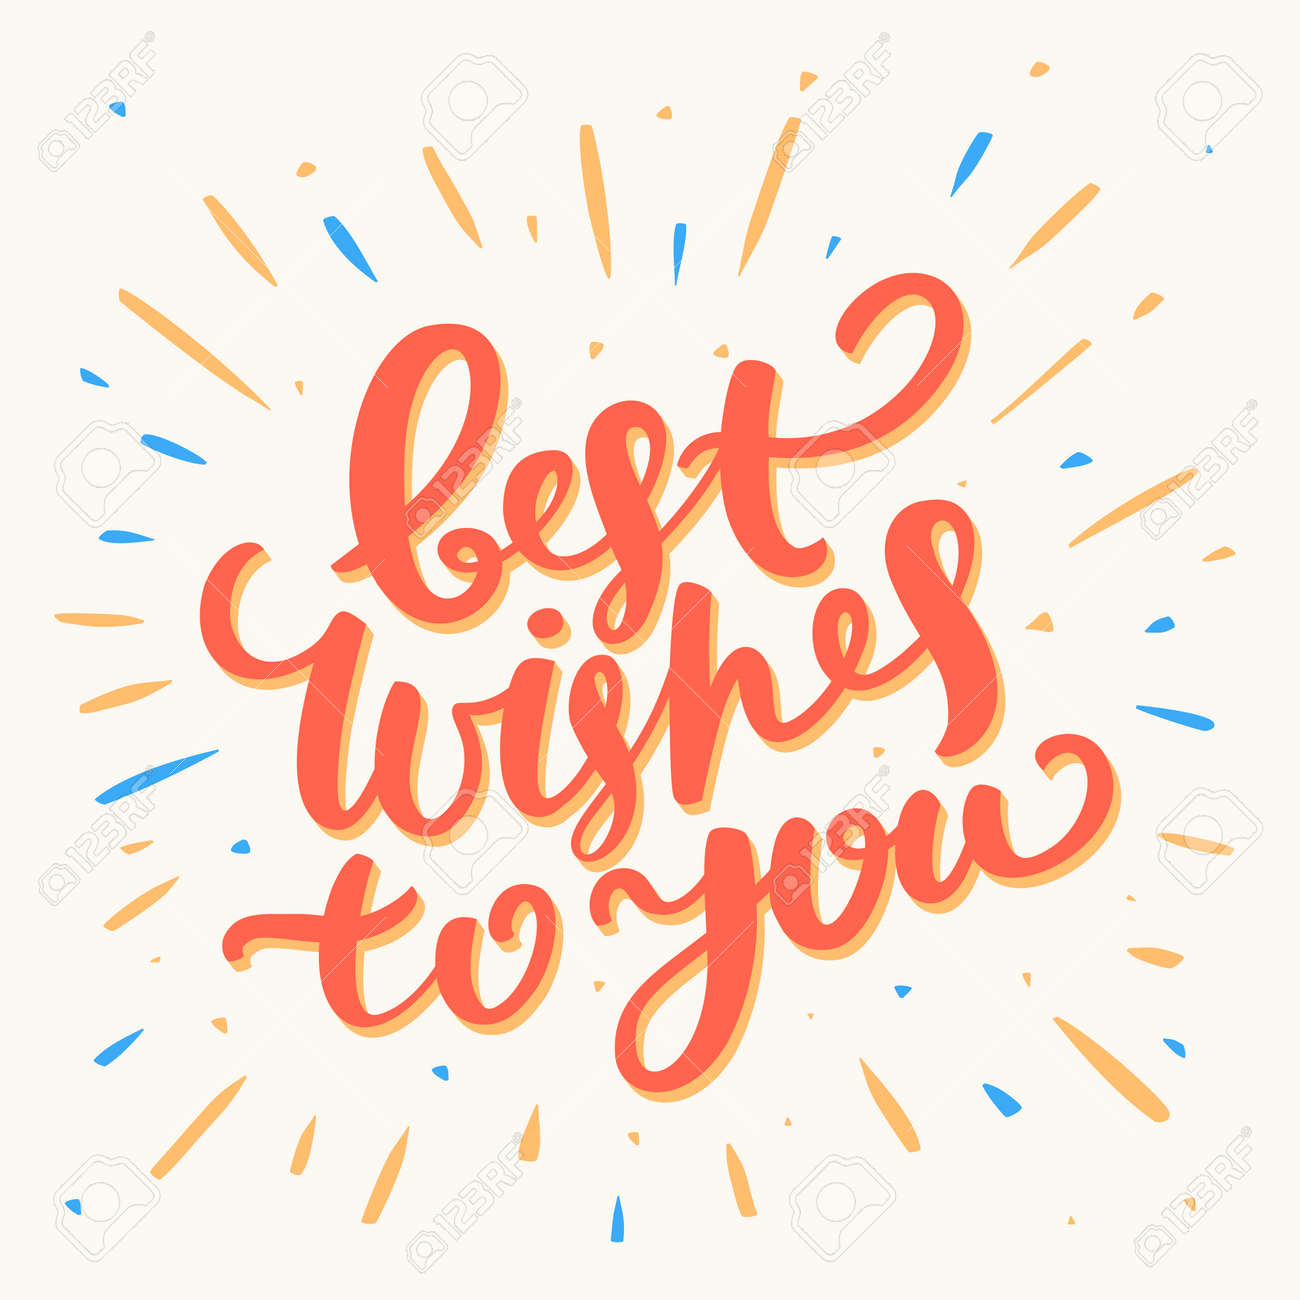 Best Wishes Stock Photos Royalty Free Business Images 47471450 Best Wishes  To You Hand Lettering Greeting Card Best Wisheshtml Exam Best Wishes Cards  Exam Best Wishes Cards